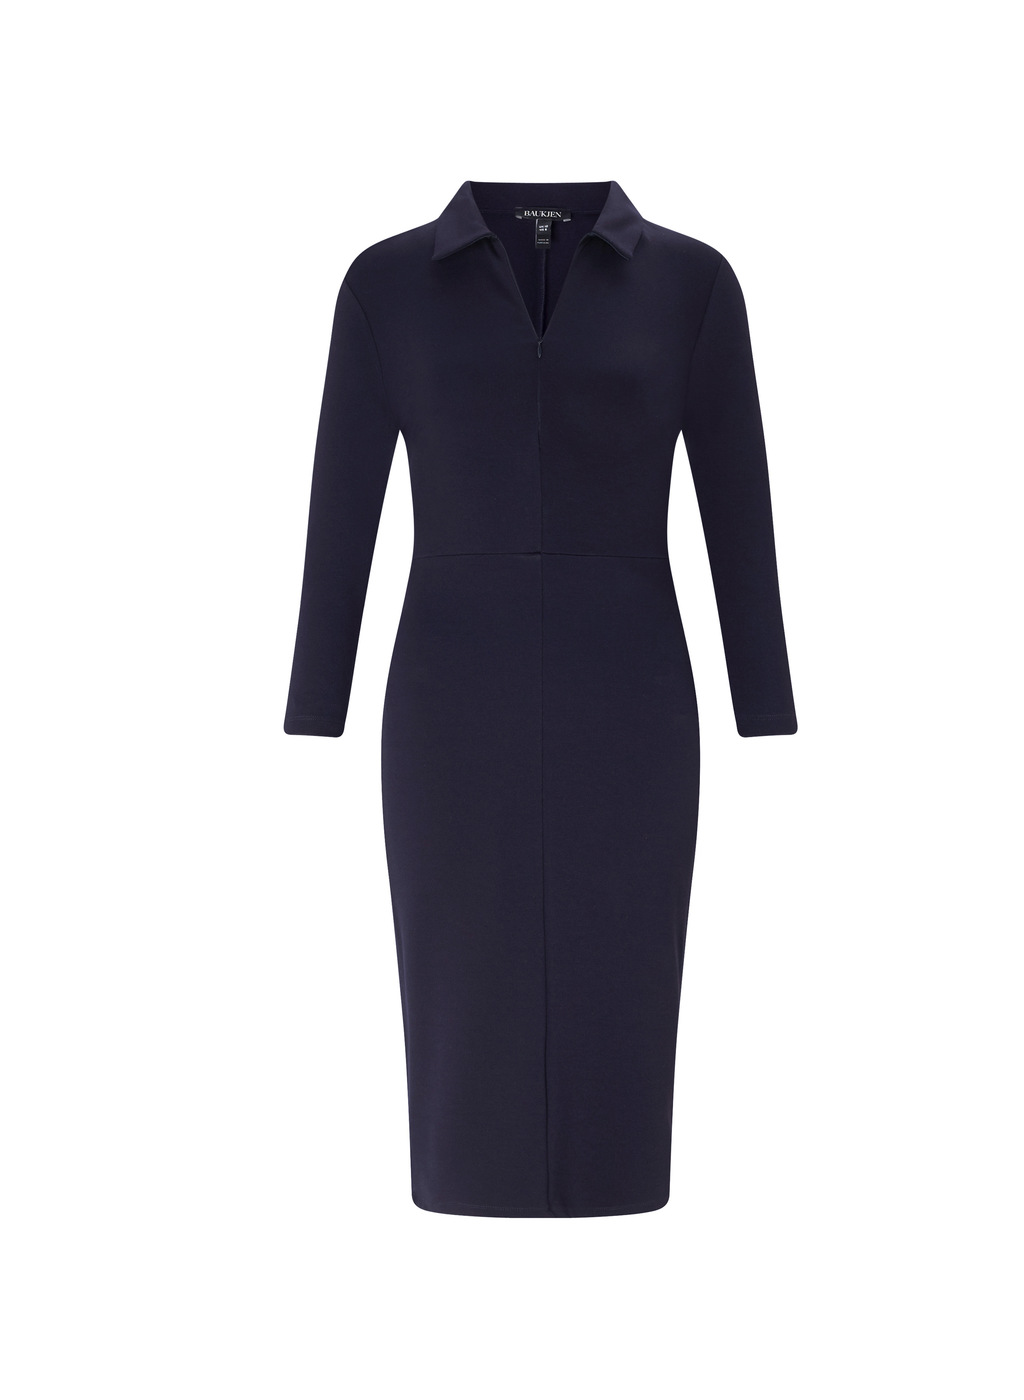 Womenswear Hayward Shift Dress - style: shift; neckline: shirt collar/peter pan/zip with opening; fit: tailored/fitted; pattern: plain; predominant colour: navy; occasions: work; length: on the knee; fibres: polyester/polyamide - stretch; sleeve length: long sleeve; sleeve style: standard; texture group: crepes; pattern type: fabric; wardrobe: investment; season: a/w 2016